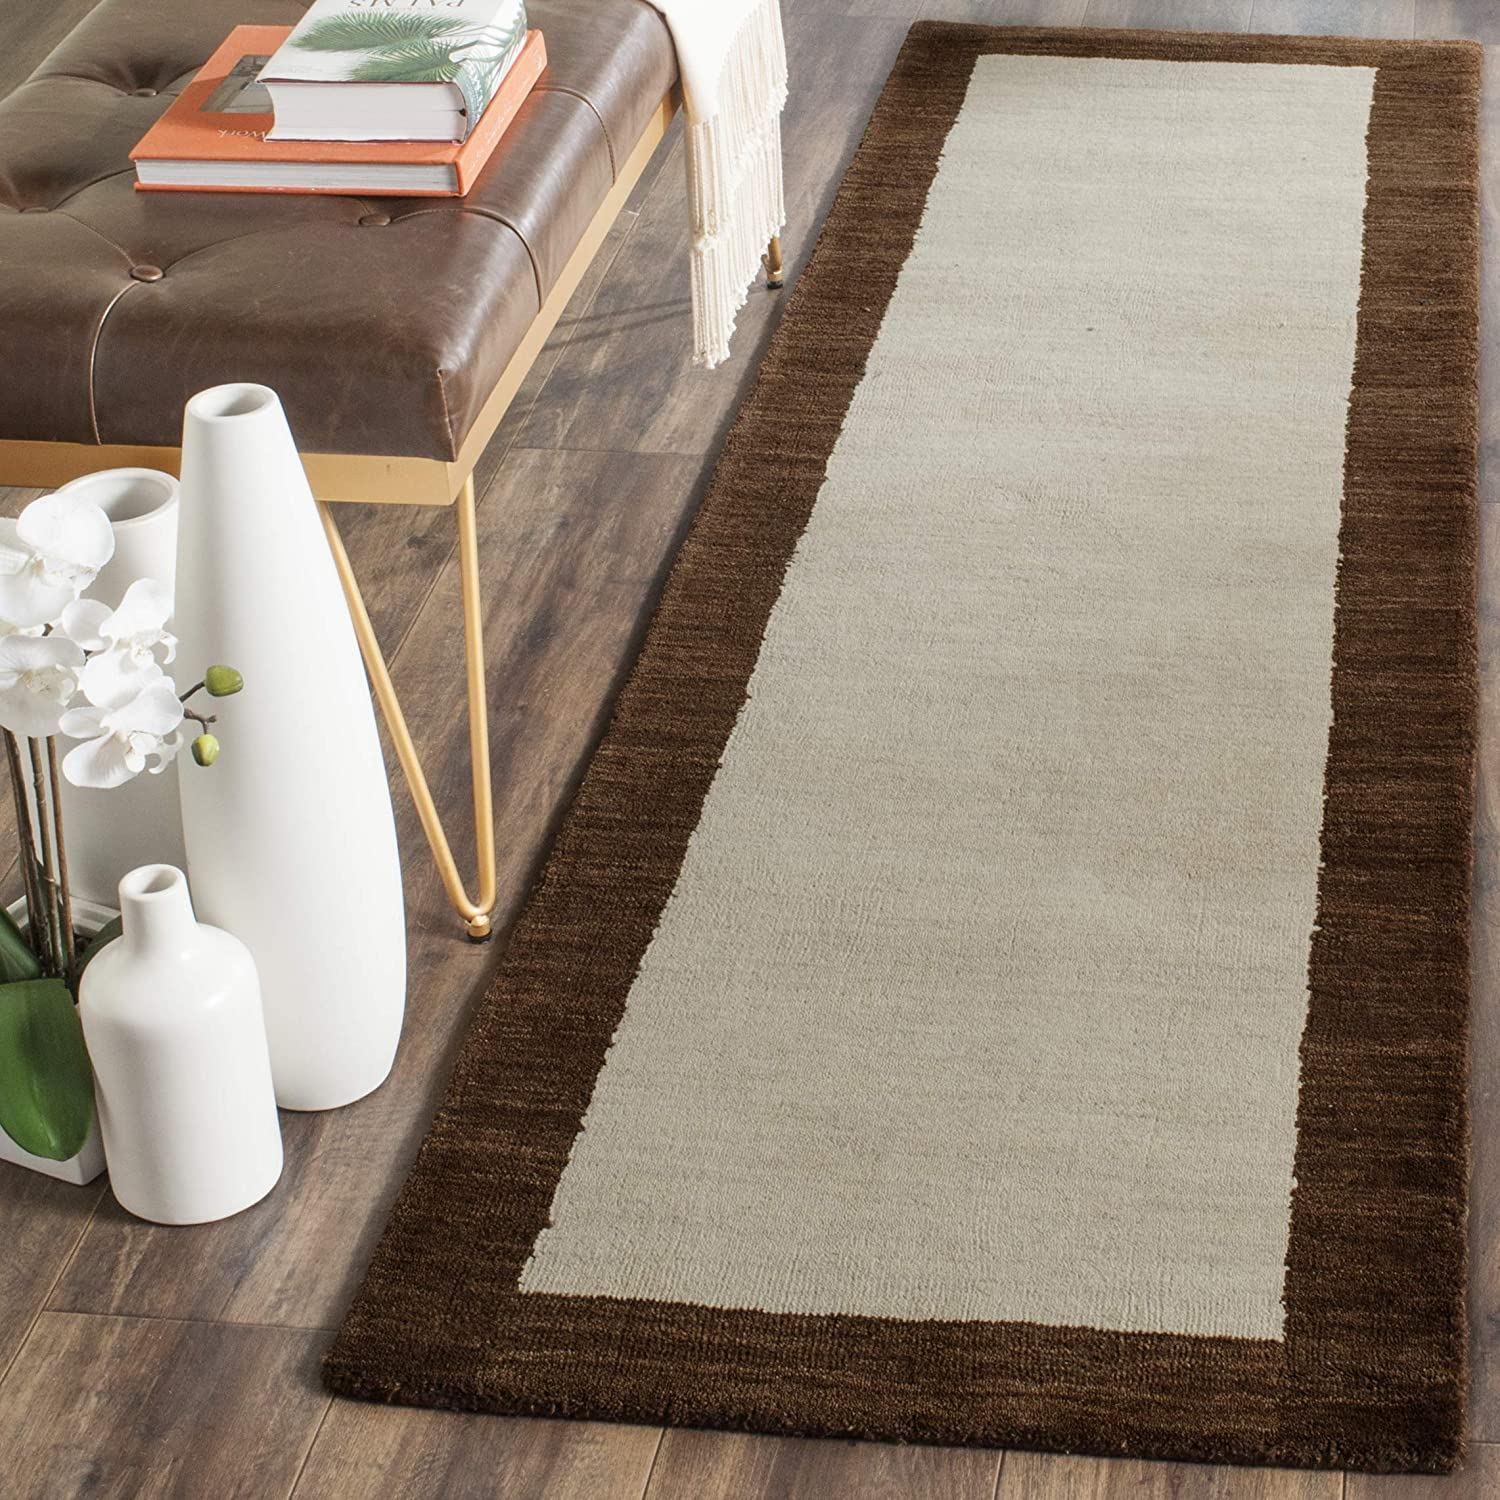 Amazon Com Safavieh Himalaya Collection Him585a Handmade Premium Wool Runner 2 3 X 6 Beige Dark Brown Furniture Decor